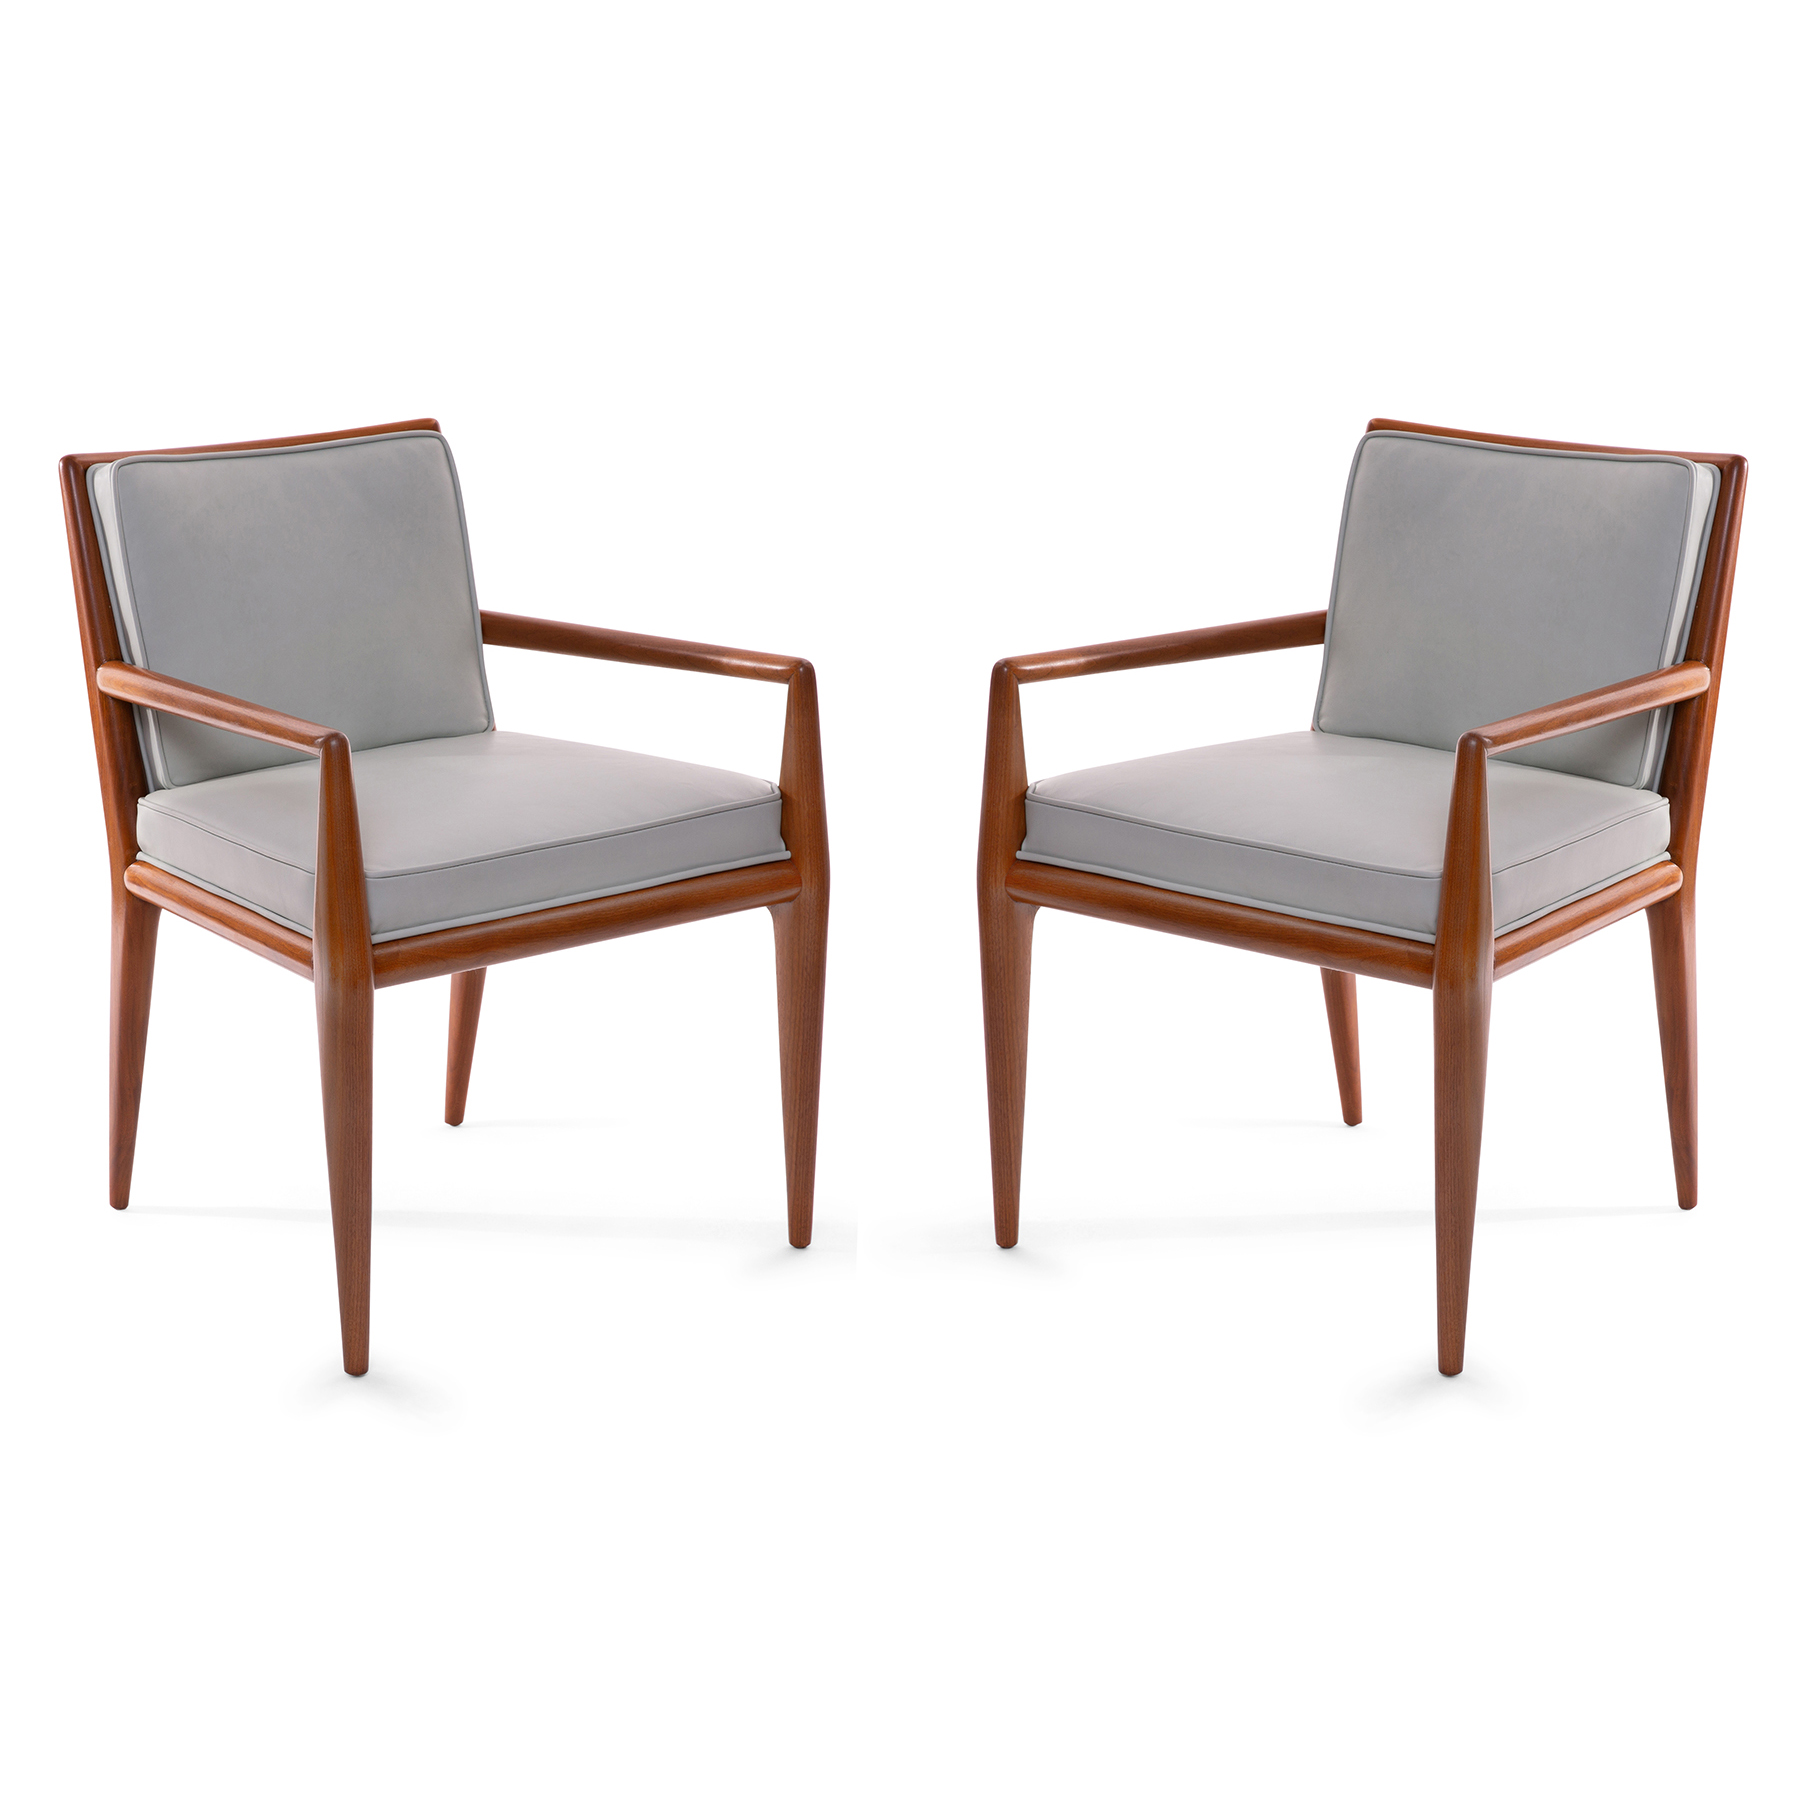 Pair Of T.H. Robsjohn Gibbings Walnut Armchairs With Robin Egg Blue Leather